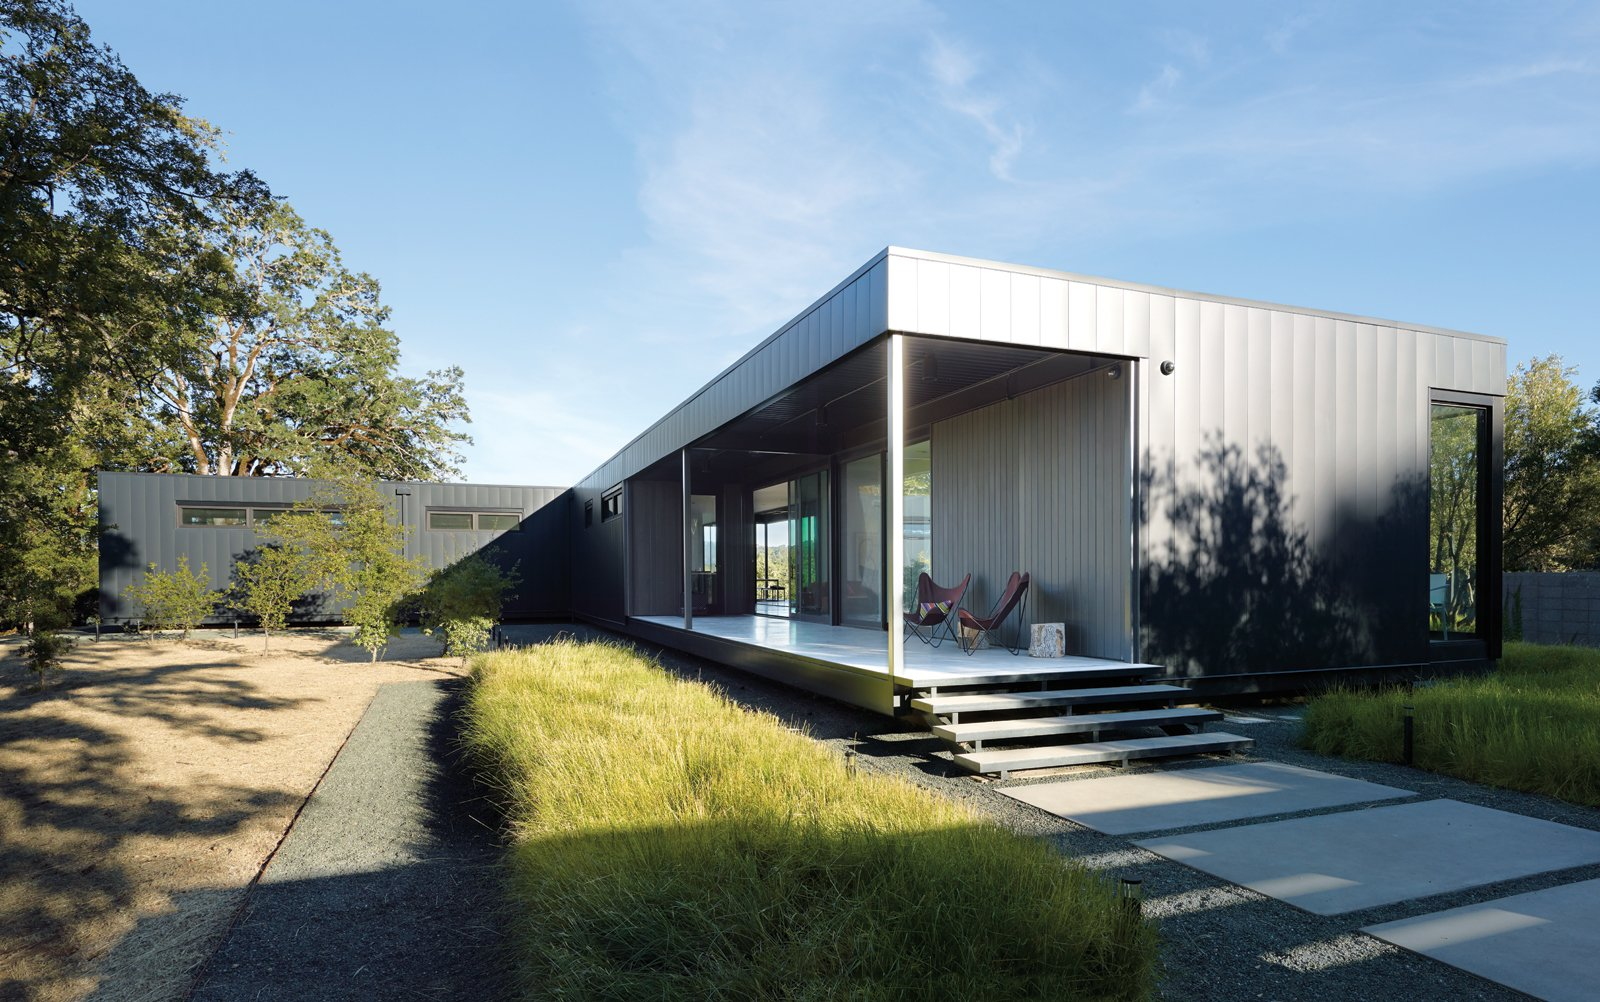 "When Abbie and Bill Burton hired Marmol Radziner to design their prefab weekend home, their two requests were ""simple-simple, replaceable materials,"" says Abbie—such as concrete floors (poured offsite in Marmol Radziner's factory) and metal panel siding—and ""the ability to be indoors or outdoors with ease."" Deep overhangs provide shade and protection from rain, so the Burtons can leave their doors open year-round and hang out on their 70-foot-long deck even in inclement weather. They visit the house once a month, usually for a week at a time, with Vinnie and Stella, their rescue Bernese Mountain dogs. Their two adult children occasionally join them. The couple hopes to one day retire here. Tagged: Outdoor and Front Yard.  Exteriors by Matthew Keeshin from A Simple Plan"